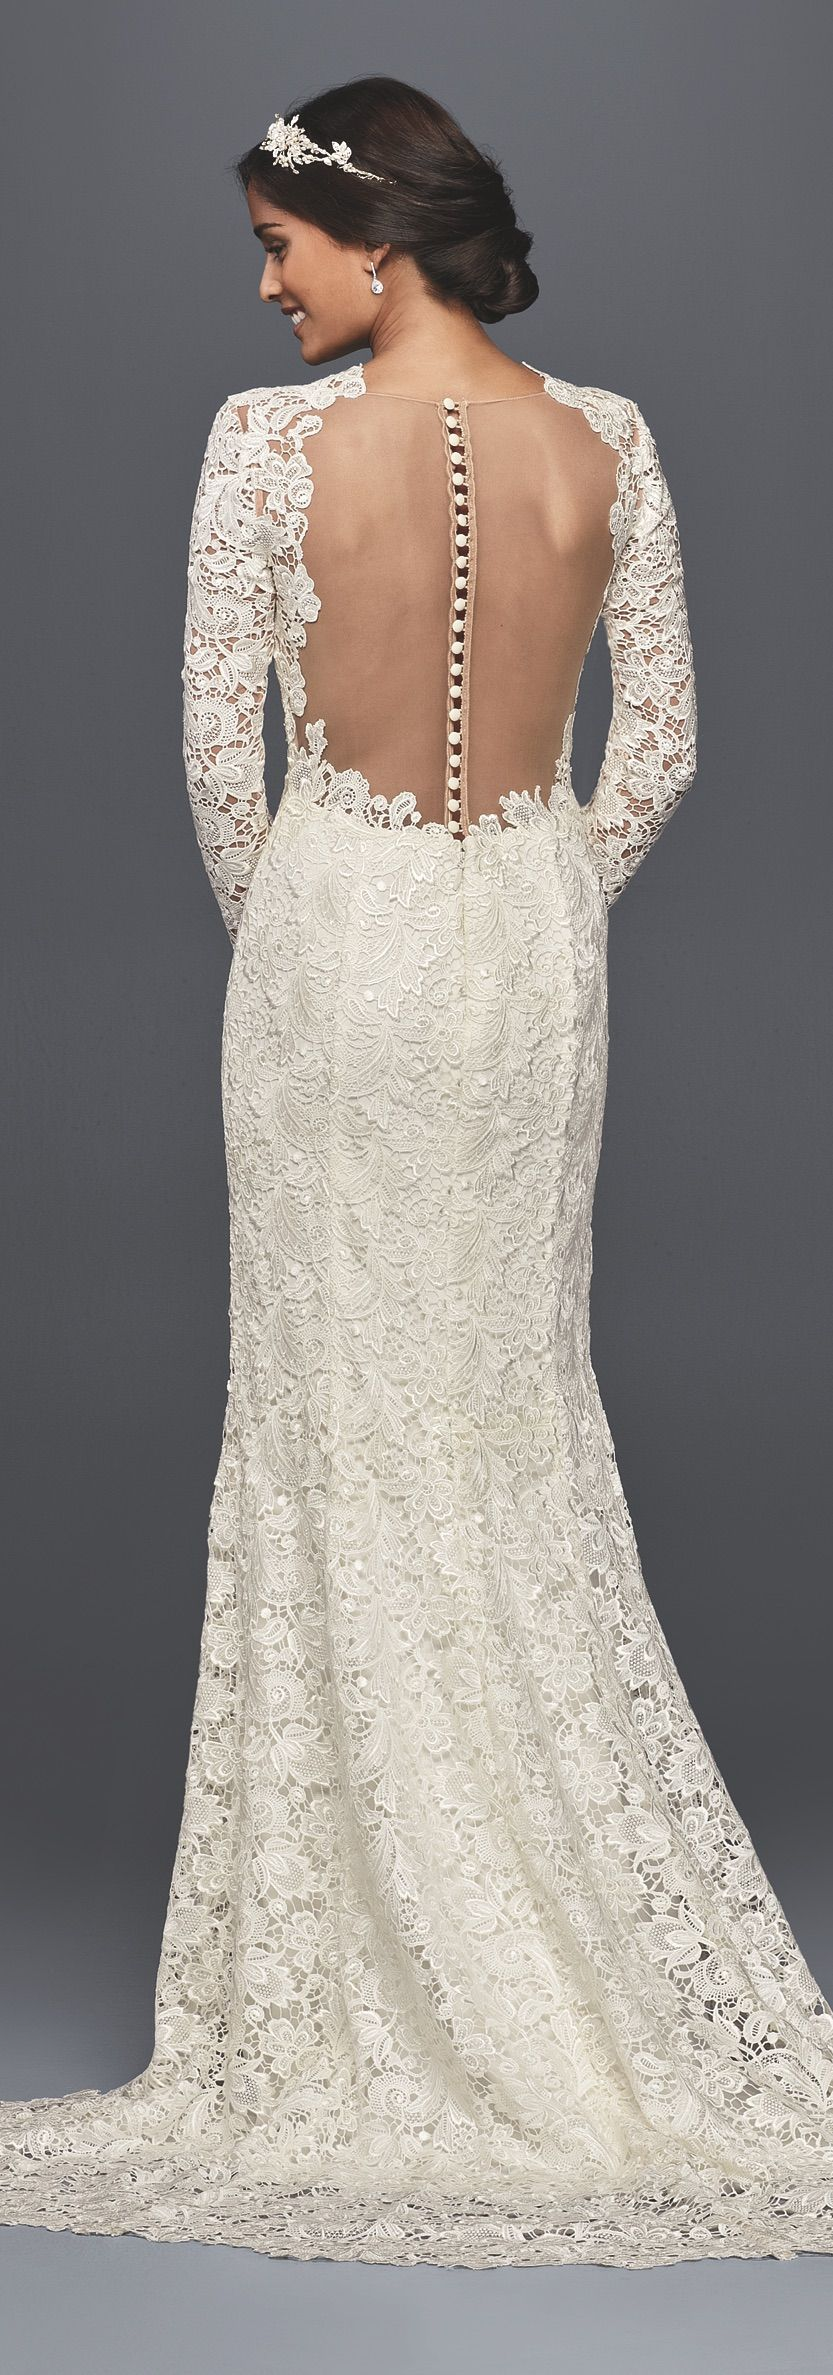 Long sleeve lace wedding dress with open back david 39 s for Lace dresses for weddings